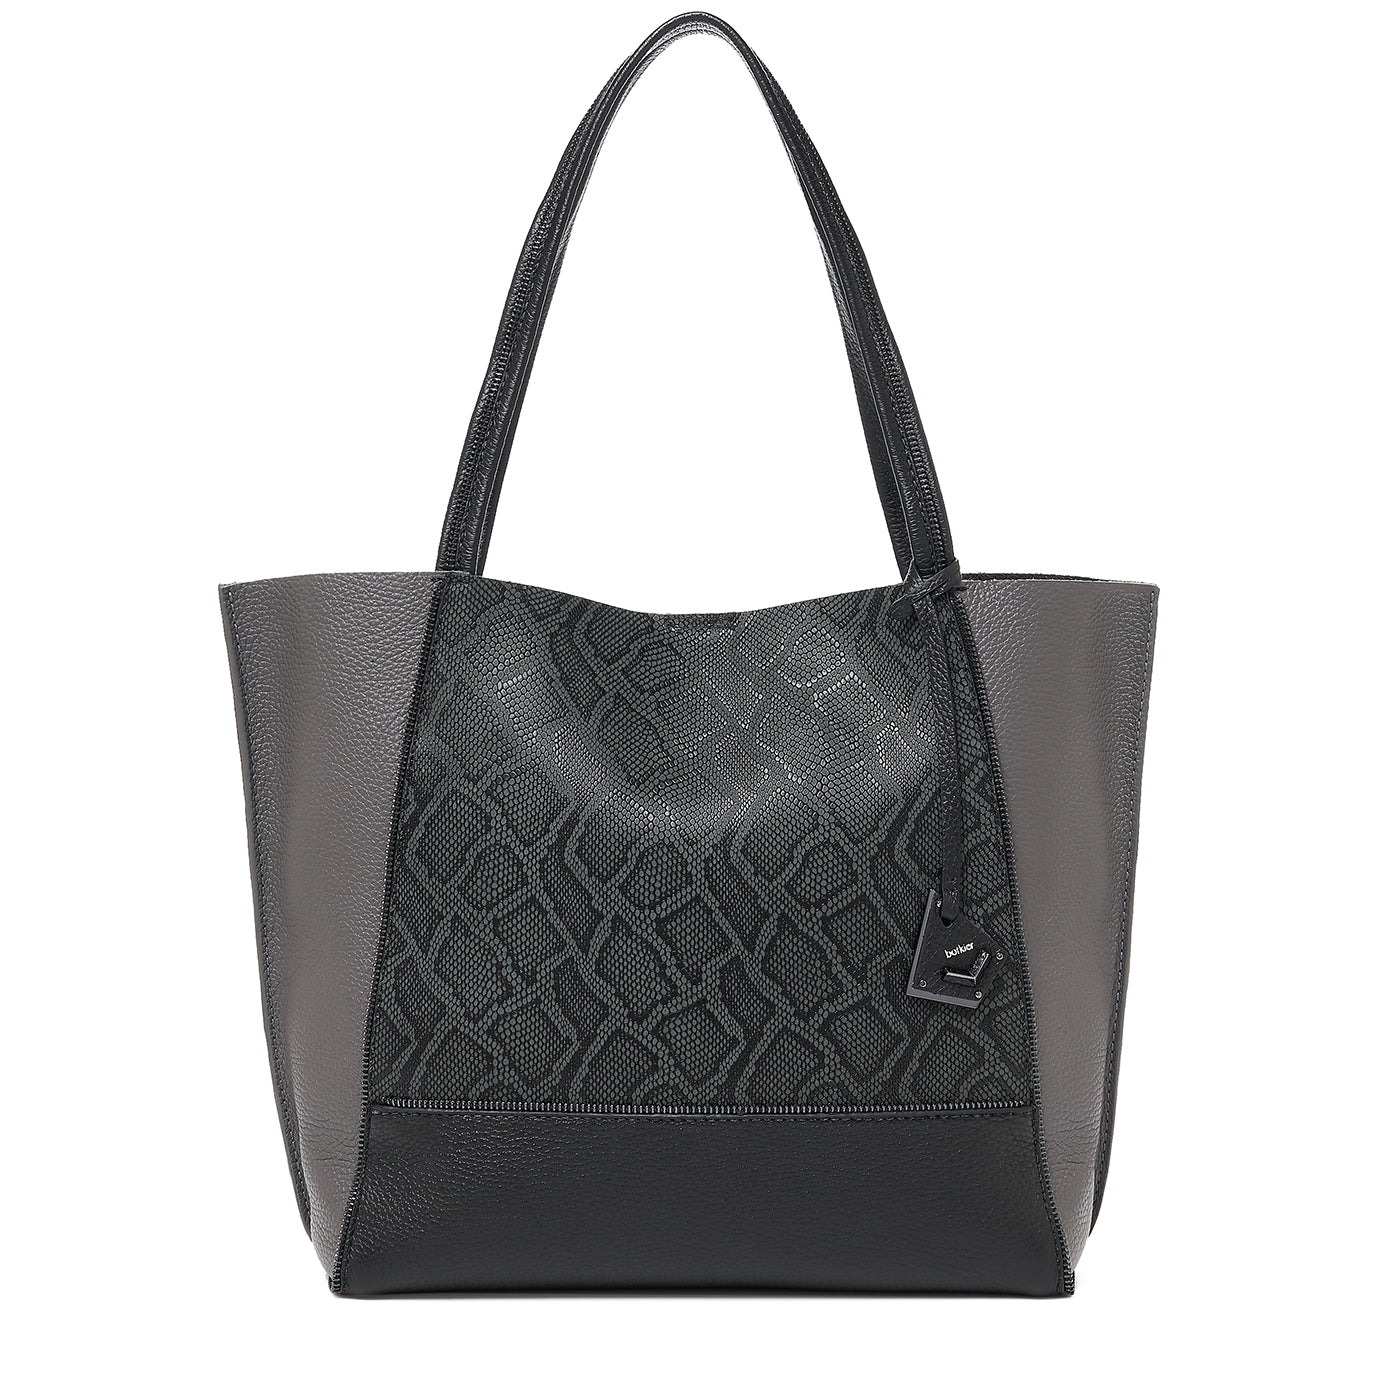 soho tote pewter snake combo front view